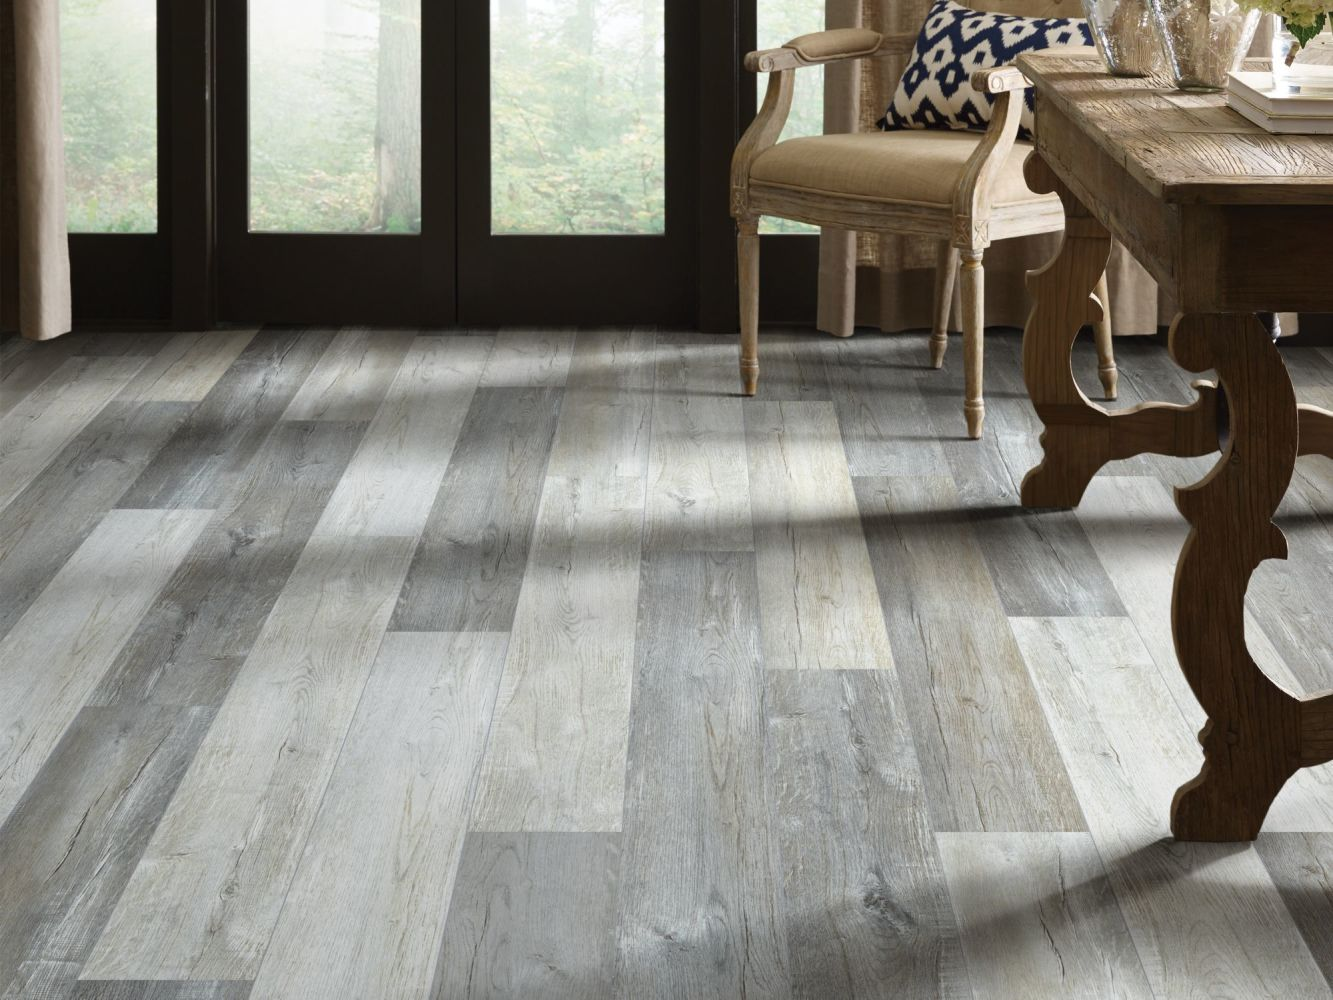 Shaw Floors Resilient Property Solutions Stature Plus Greyed Barnboard 05048_VE371